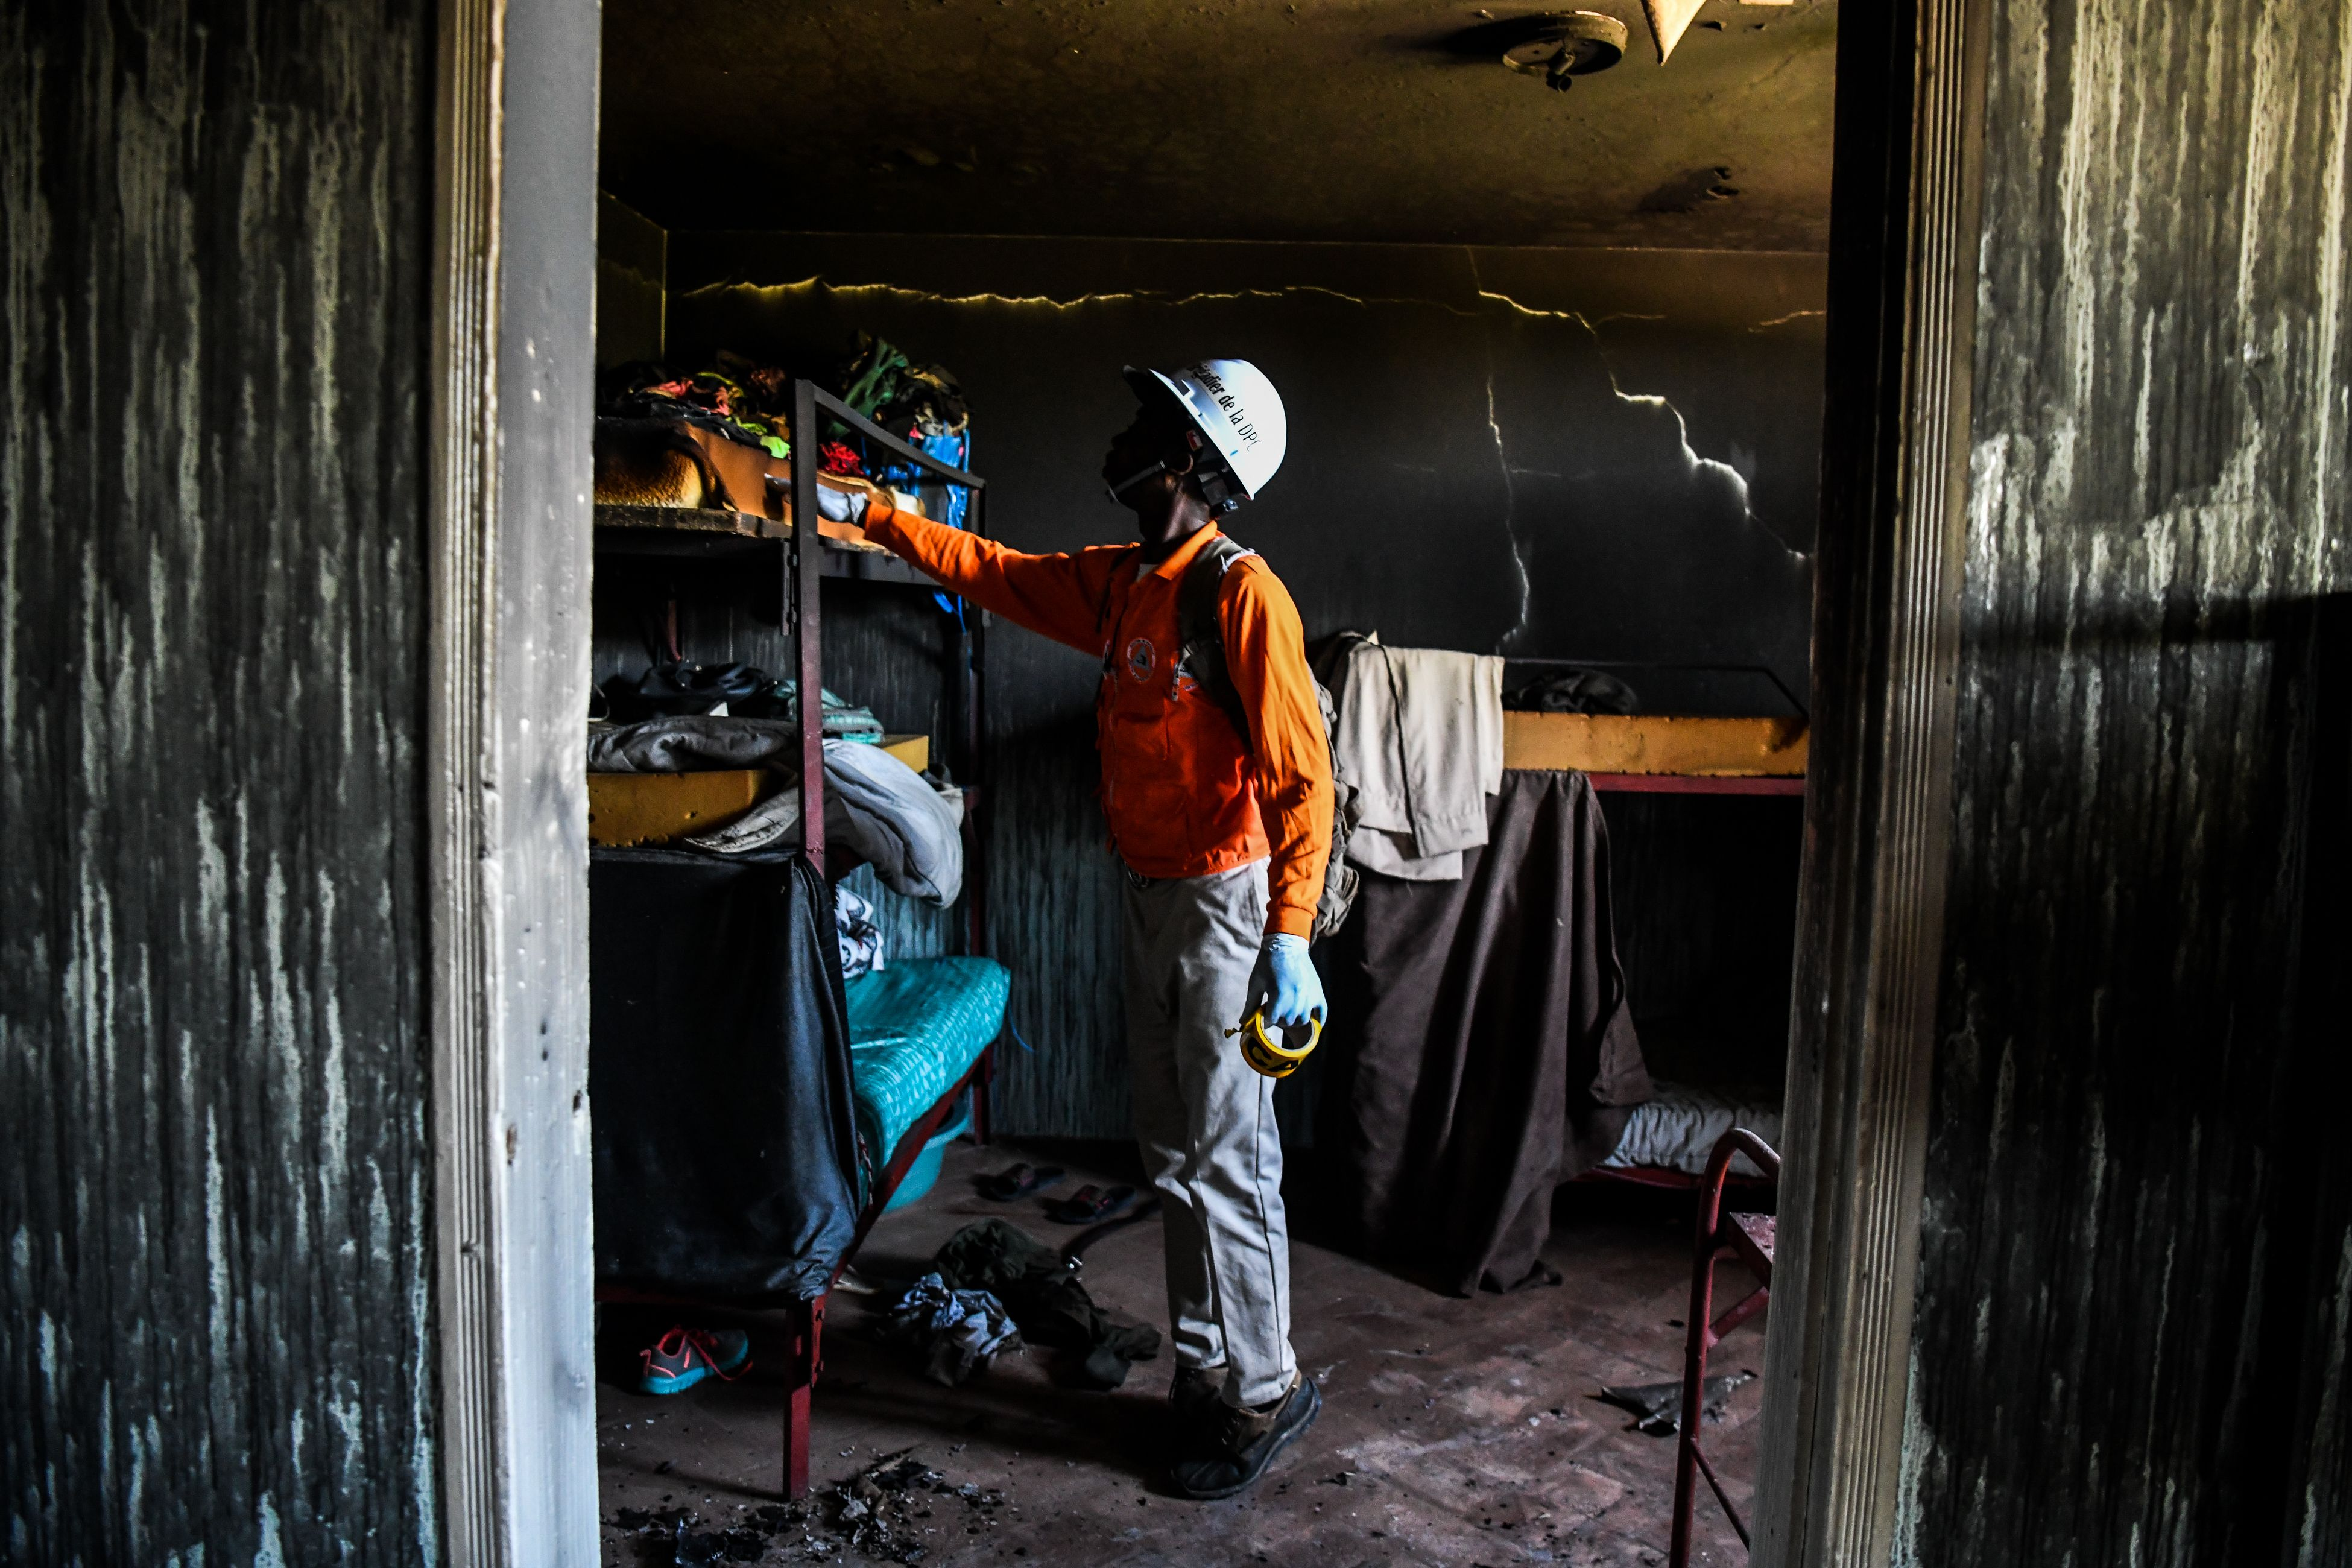 A fireman inspects a room inside the Orphanage of the Church of Bible Understanding.